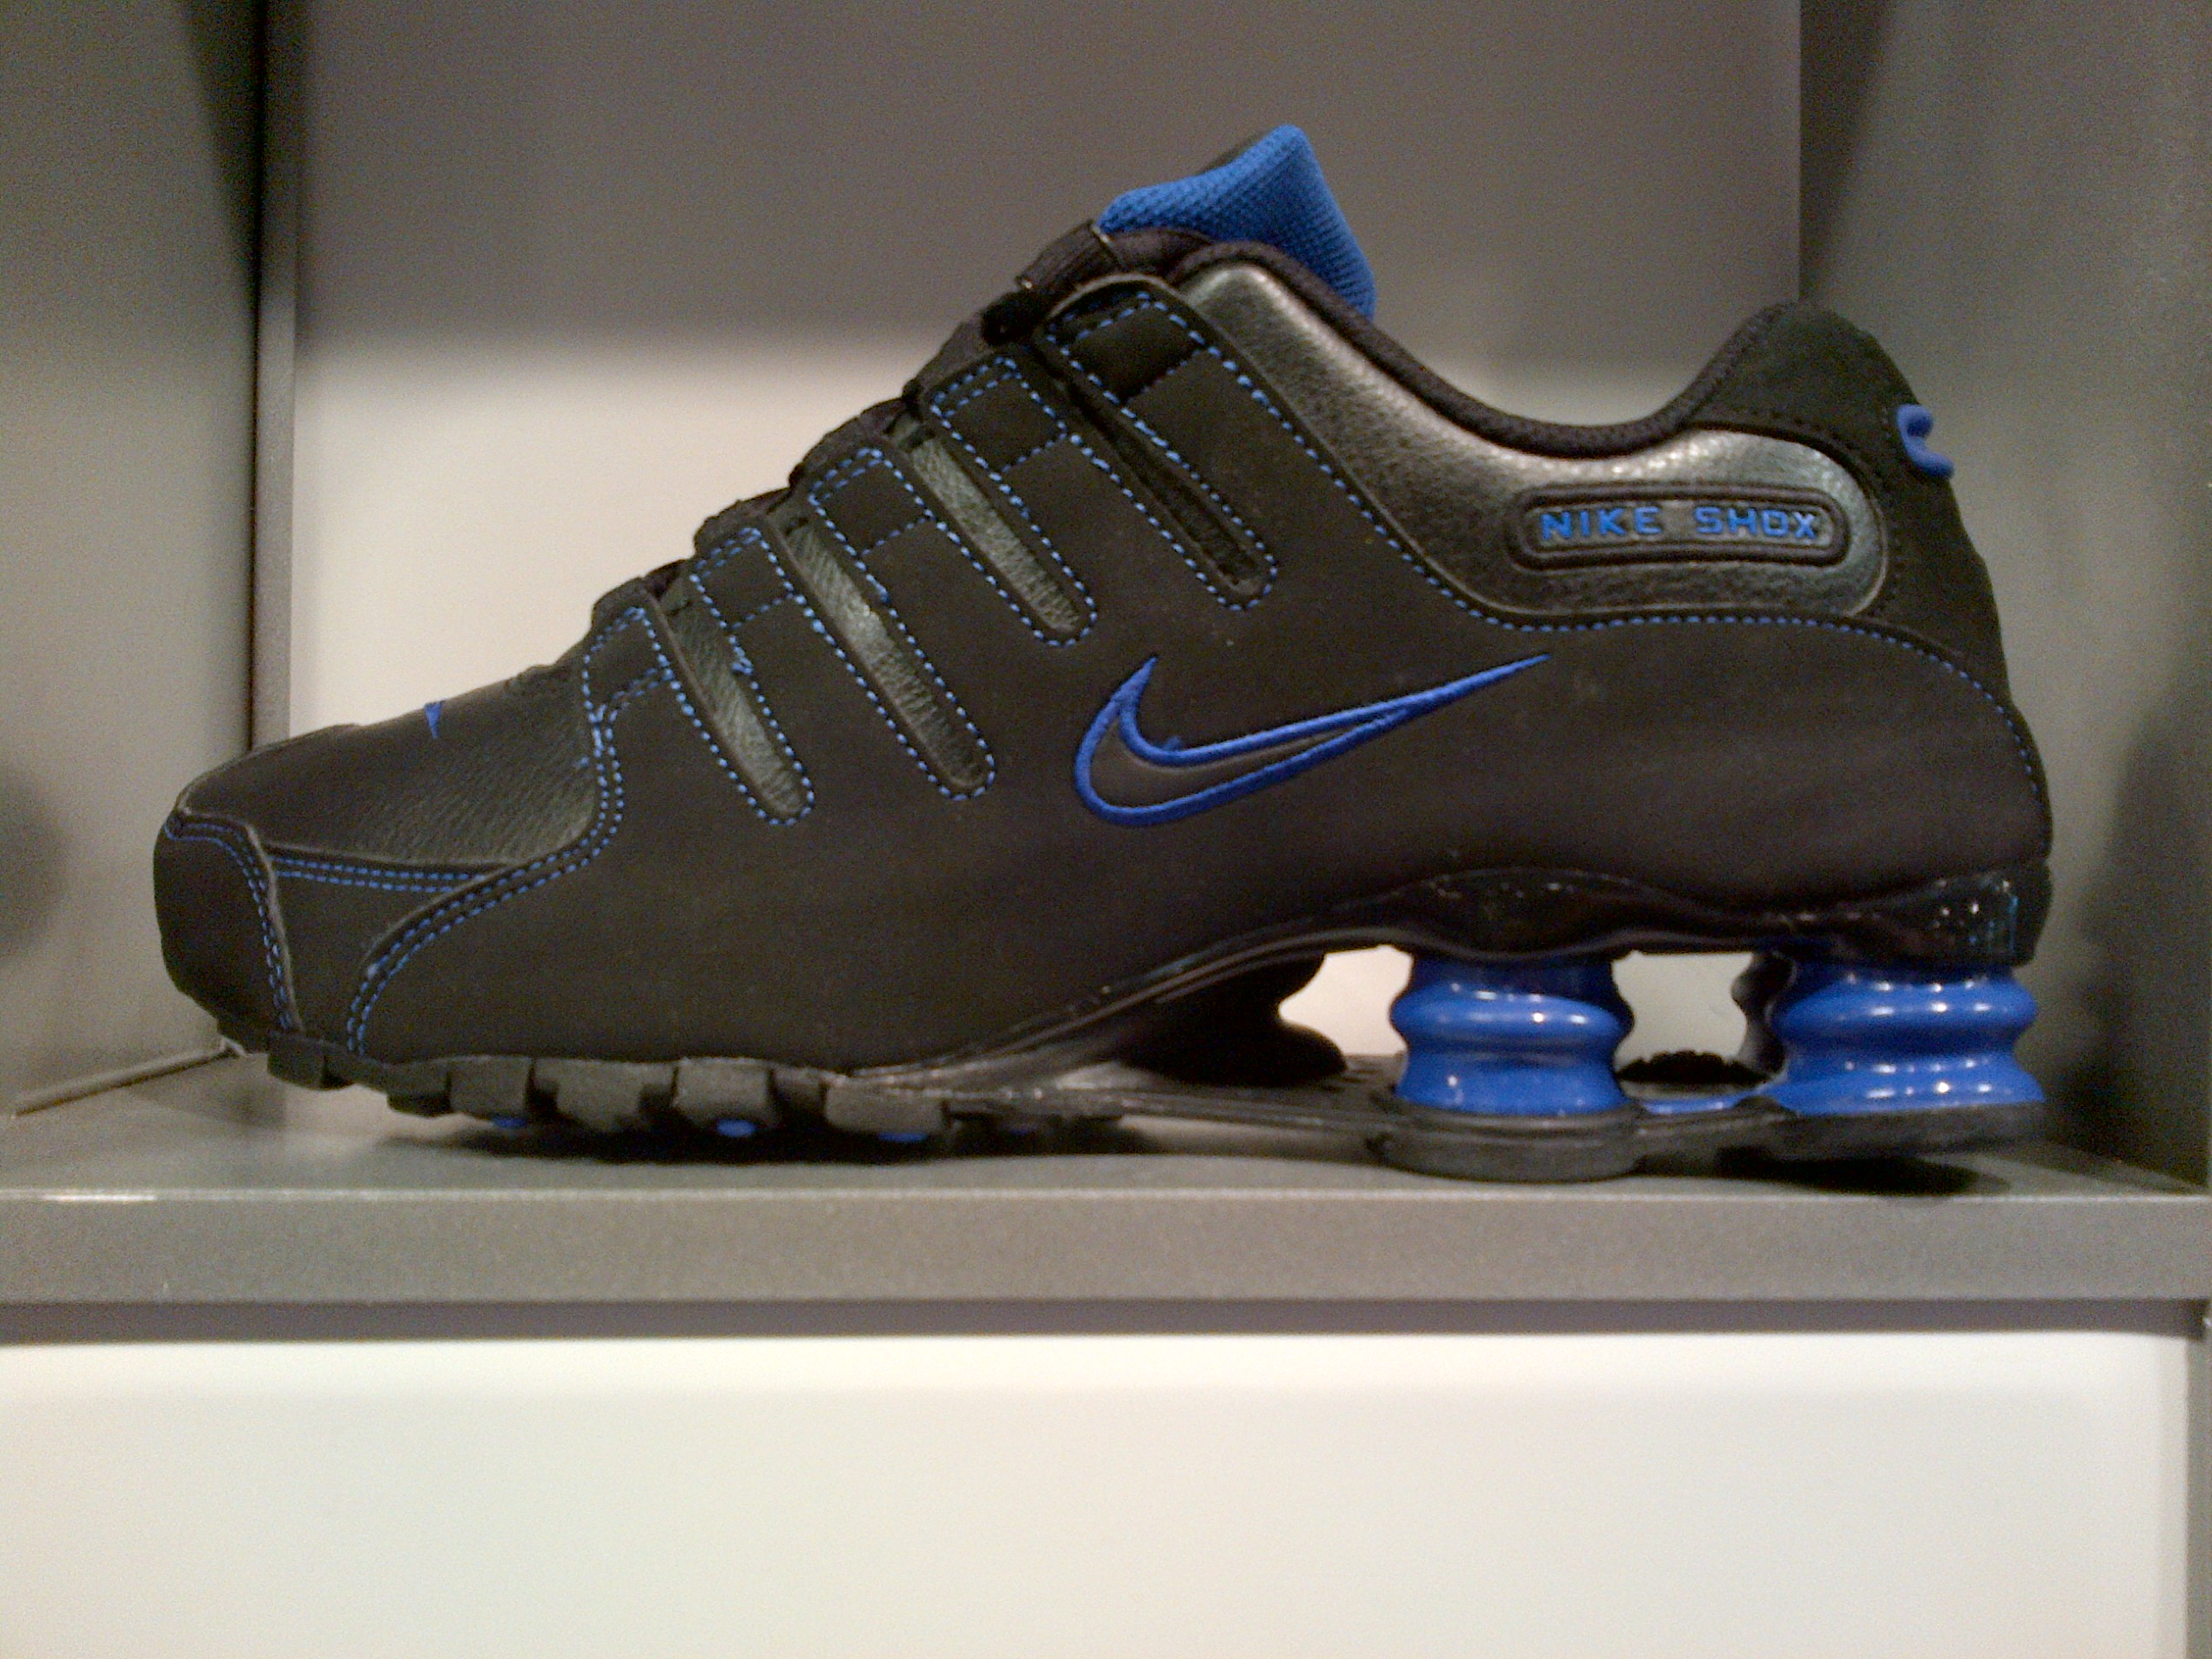 Nike Shox Nz Mens Nike Shox Nz Men s Running Shoes  fb44a9f540e4